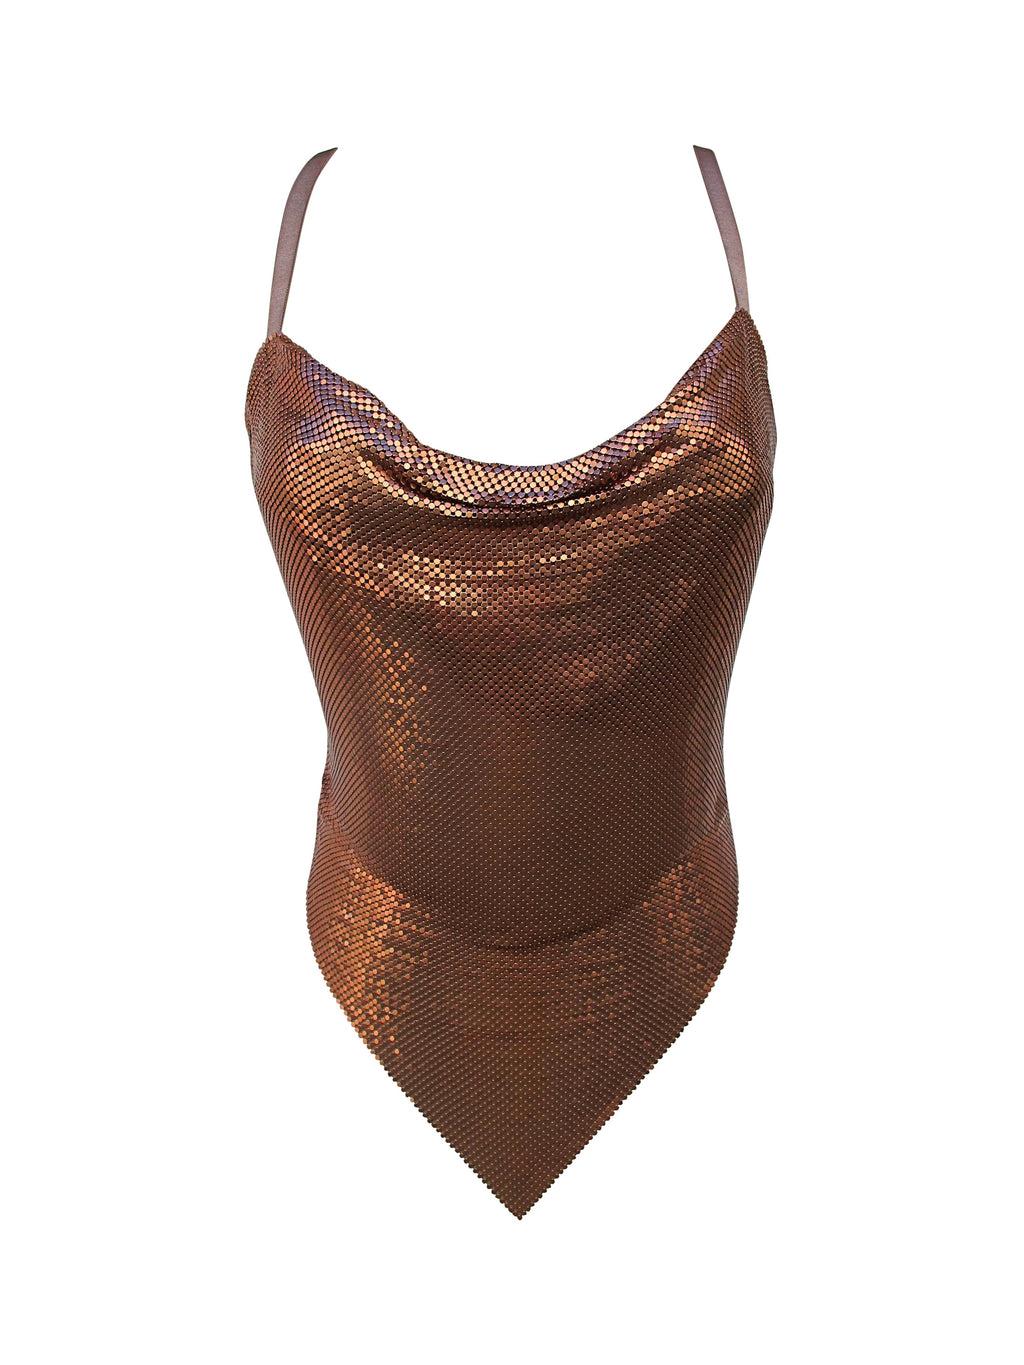 Bella Bronze Top - Annie's Ibiza